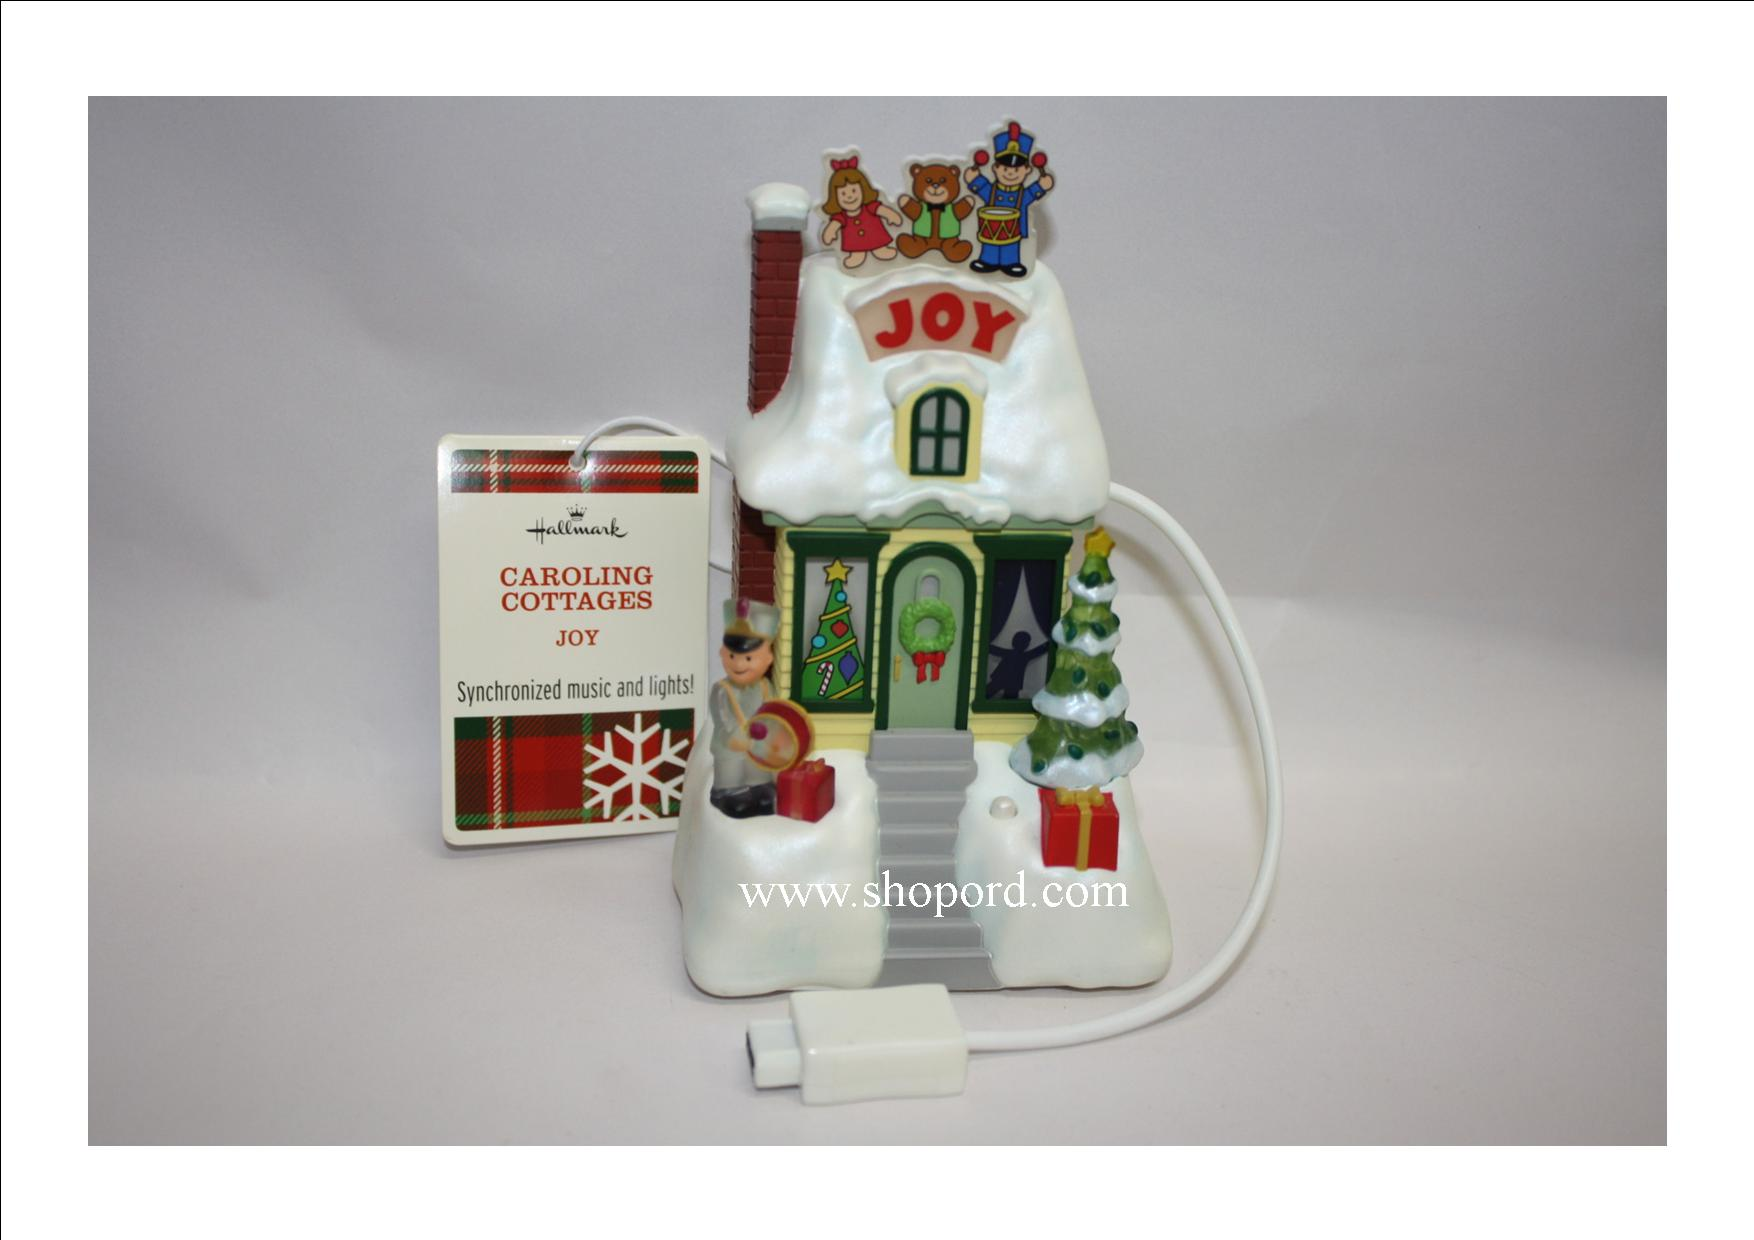 Hallmark Caroling Cottages Joy XLJ6026 (With Tag)